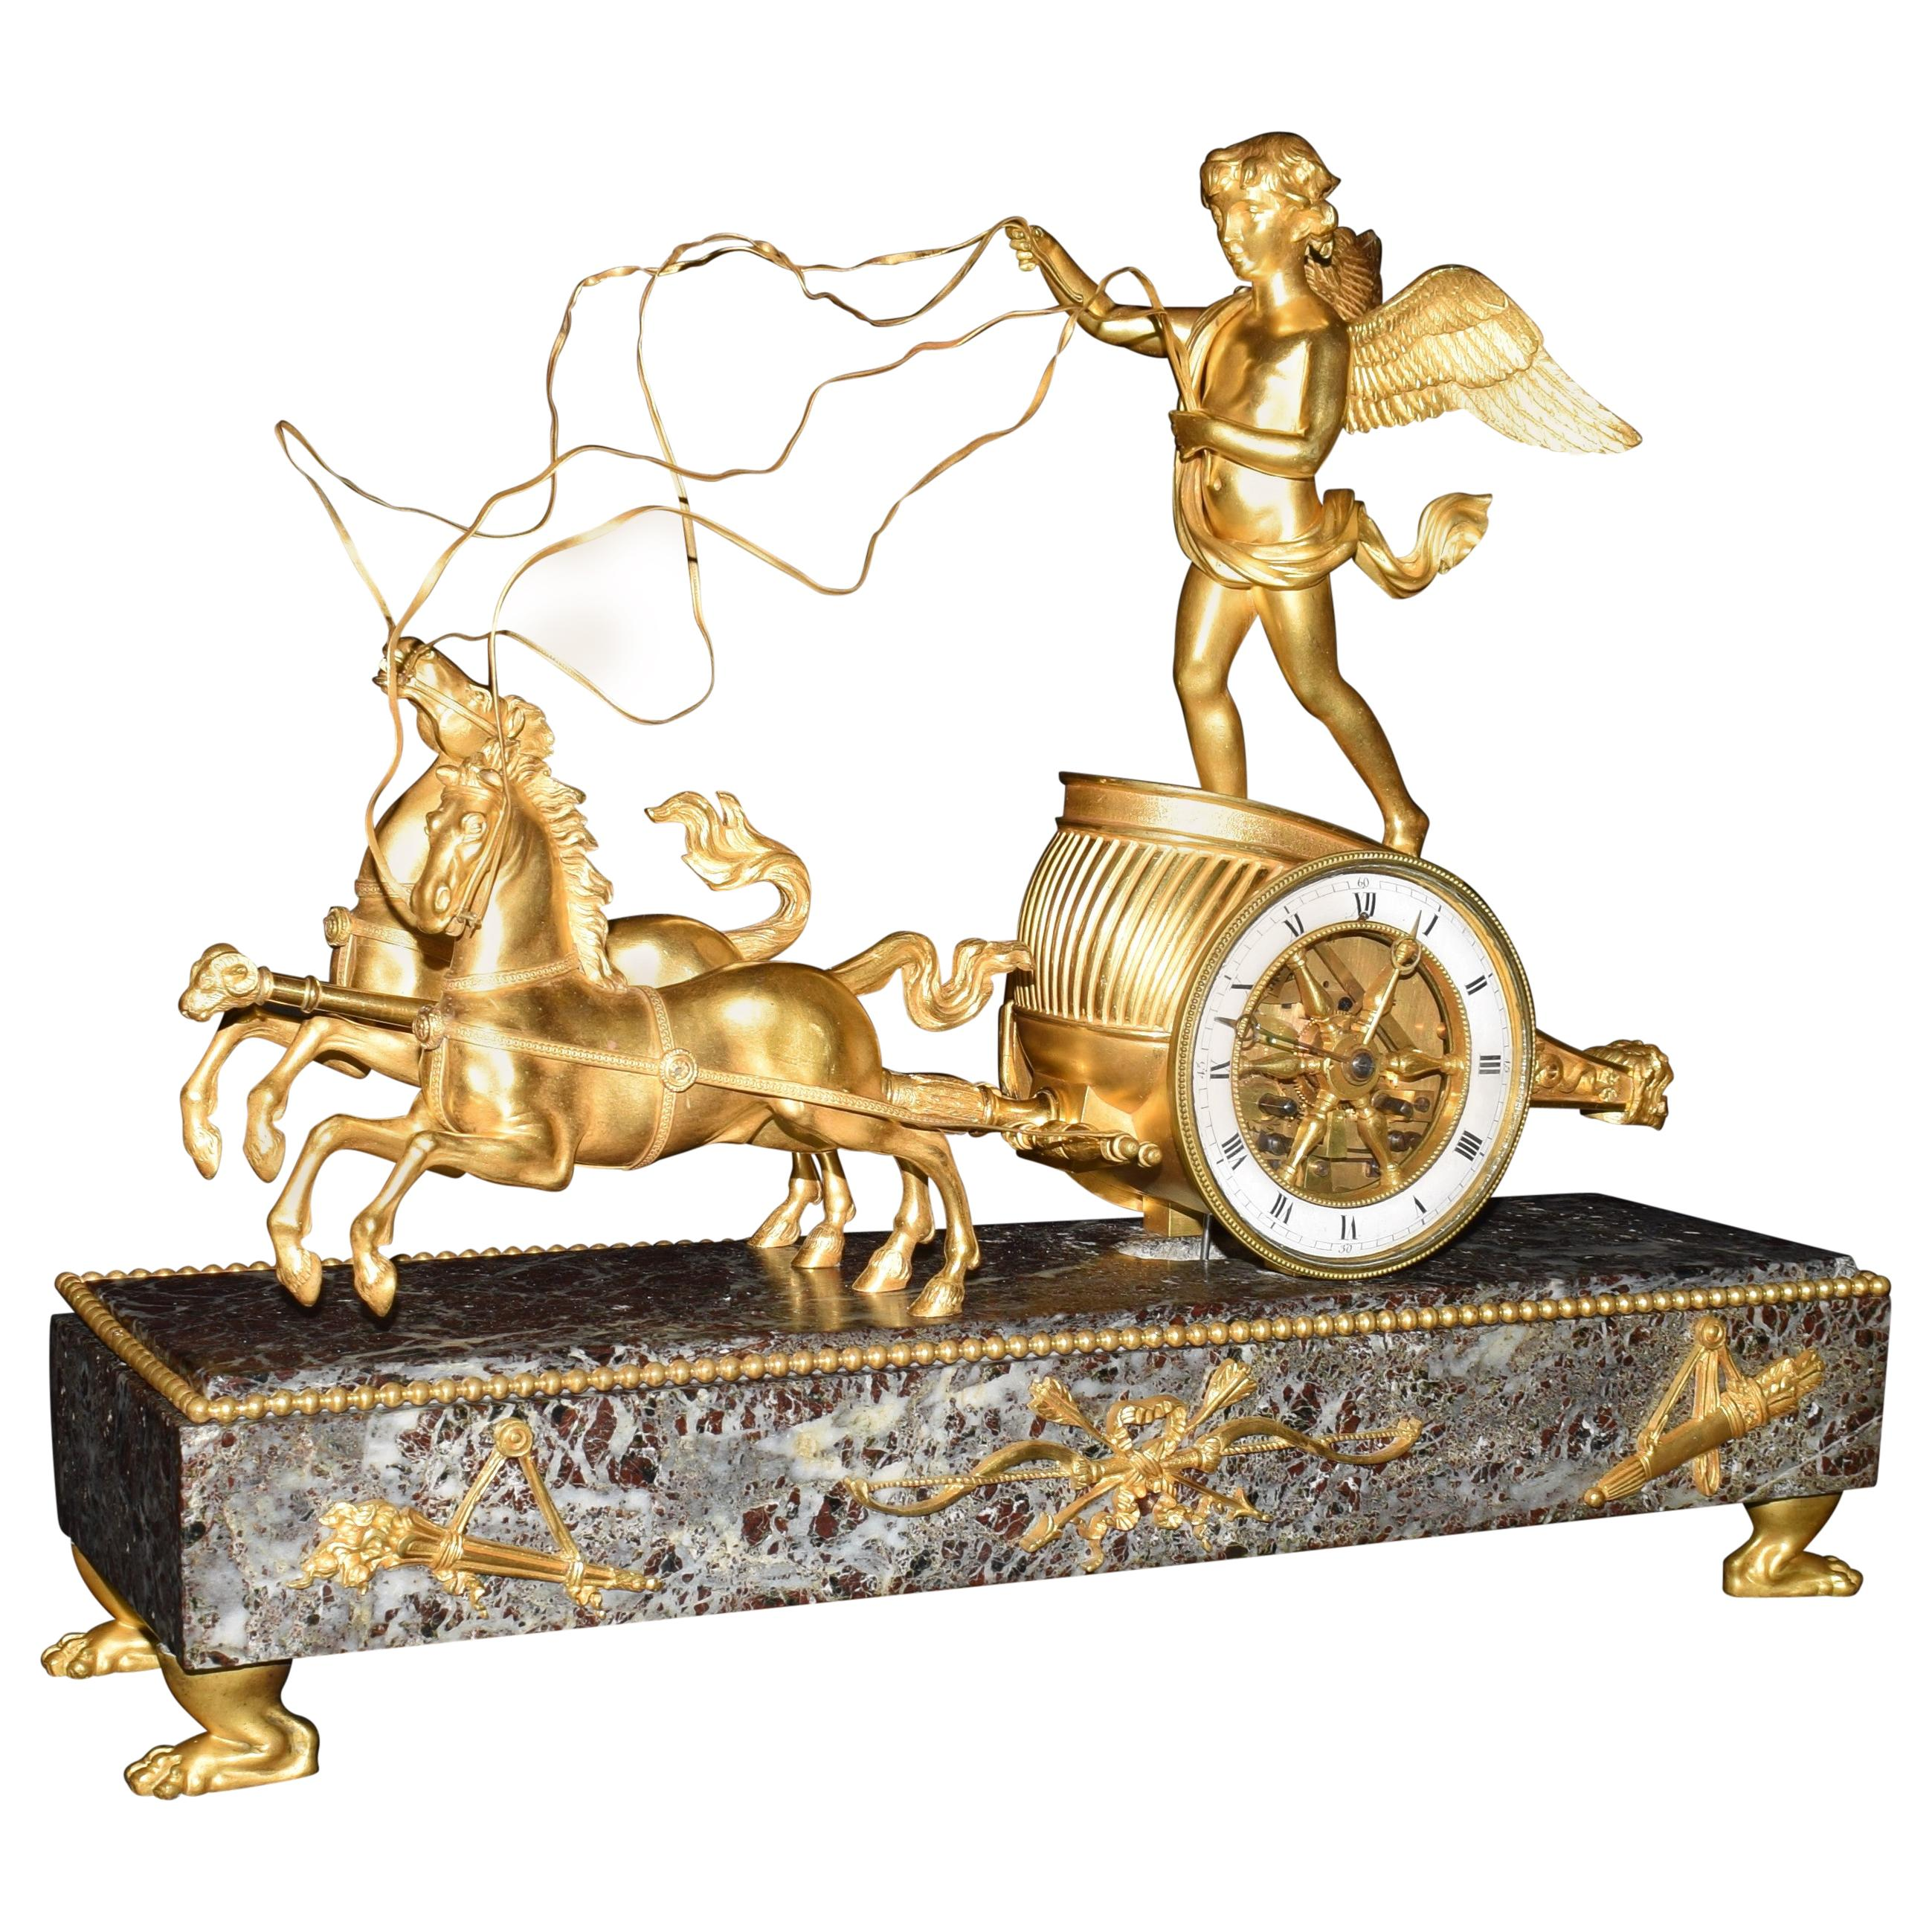 Directoire Gilt-Bronze Marble Mounted Chariot Clock, Late 19th Century